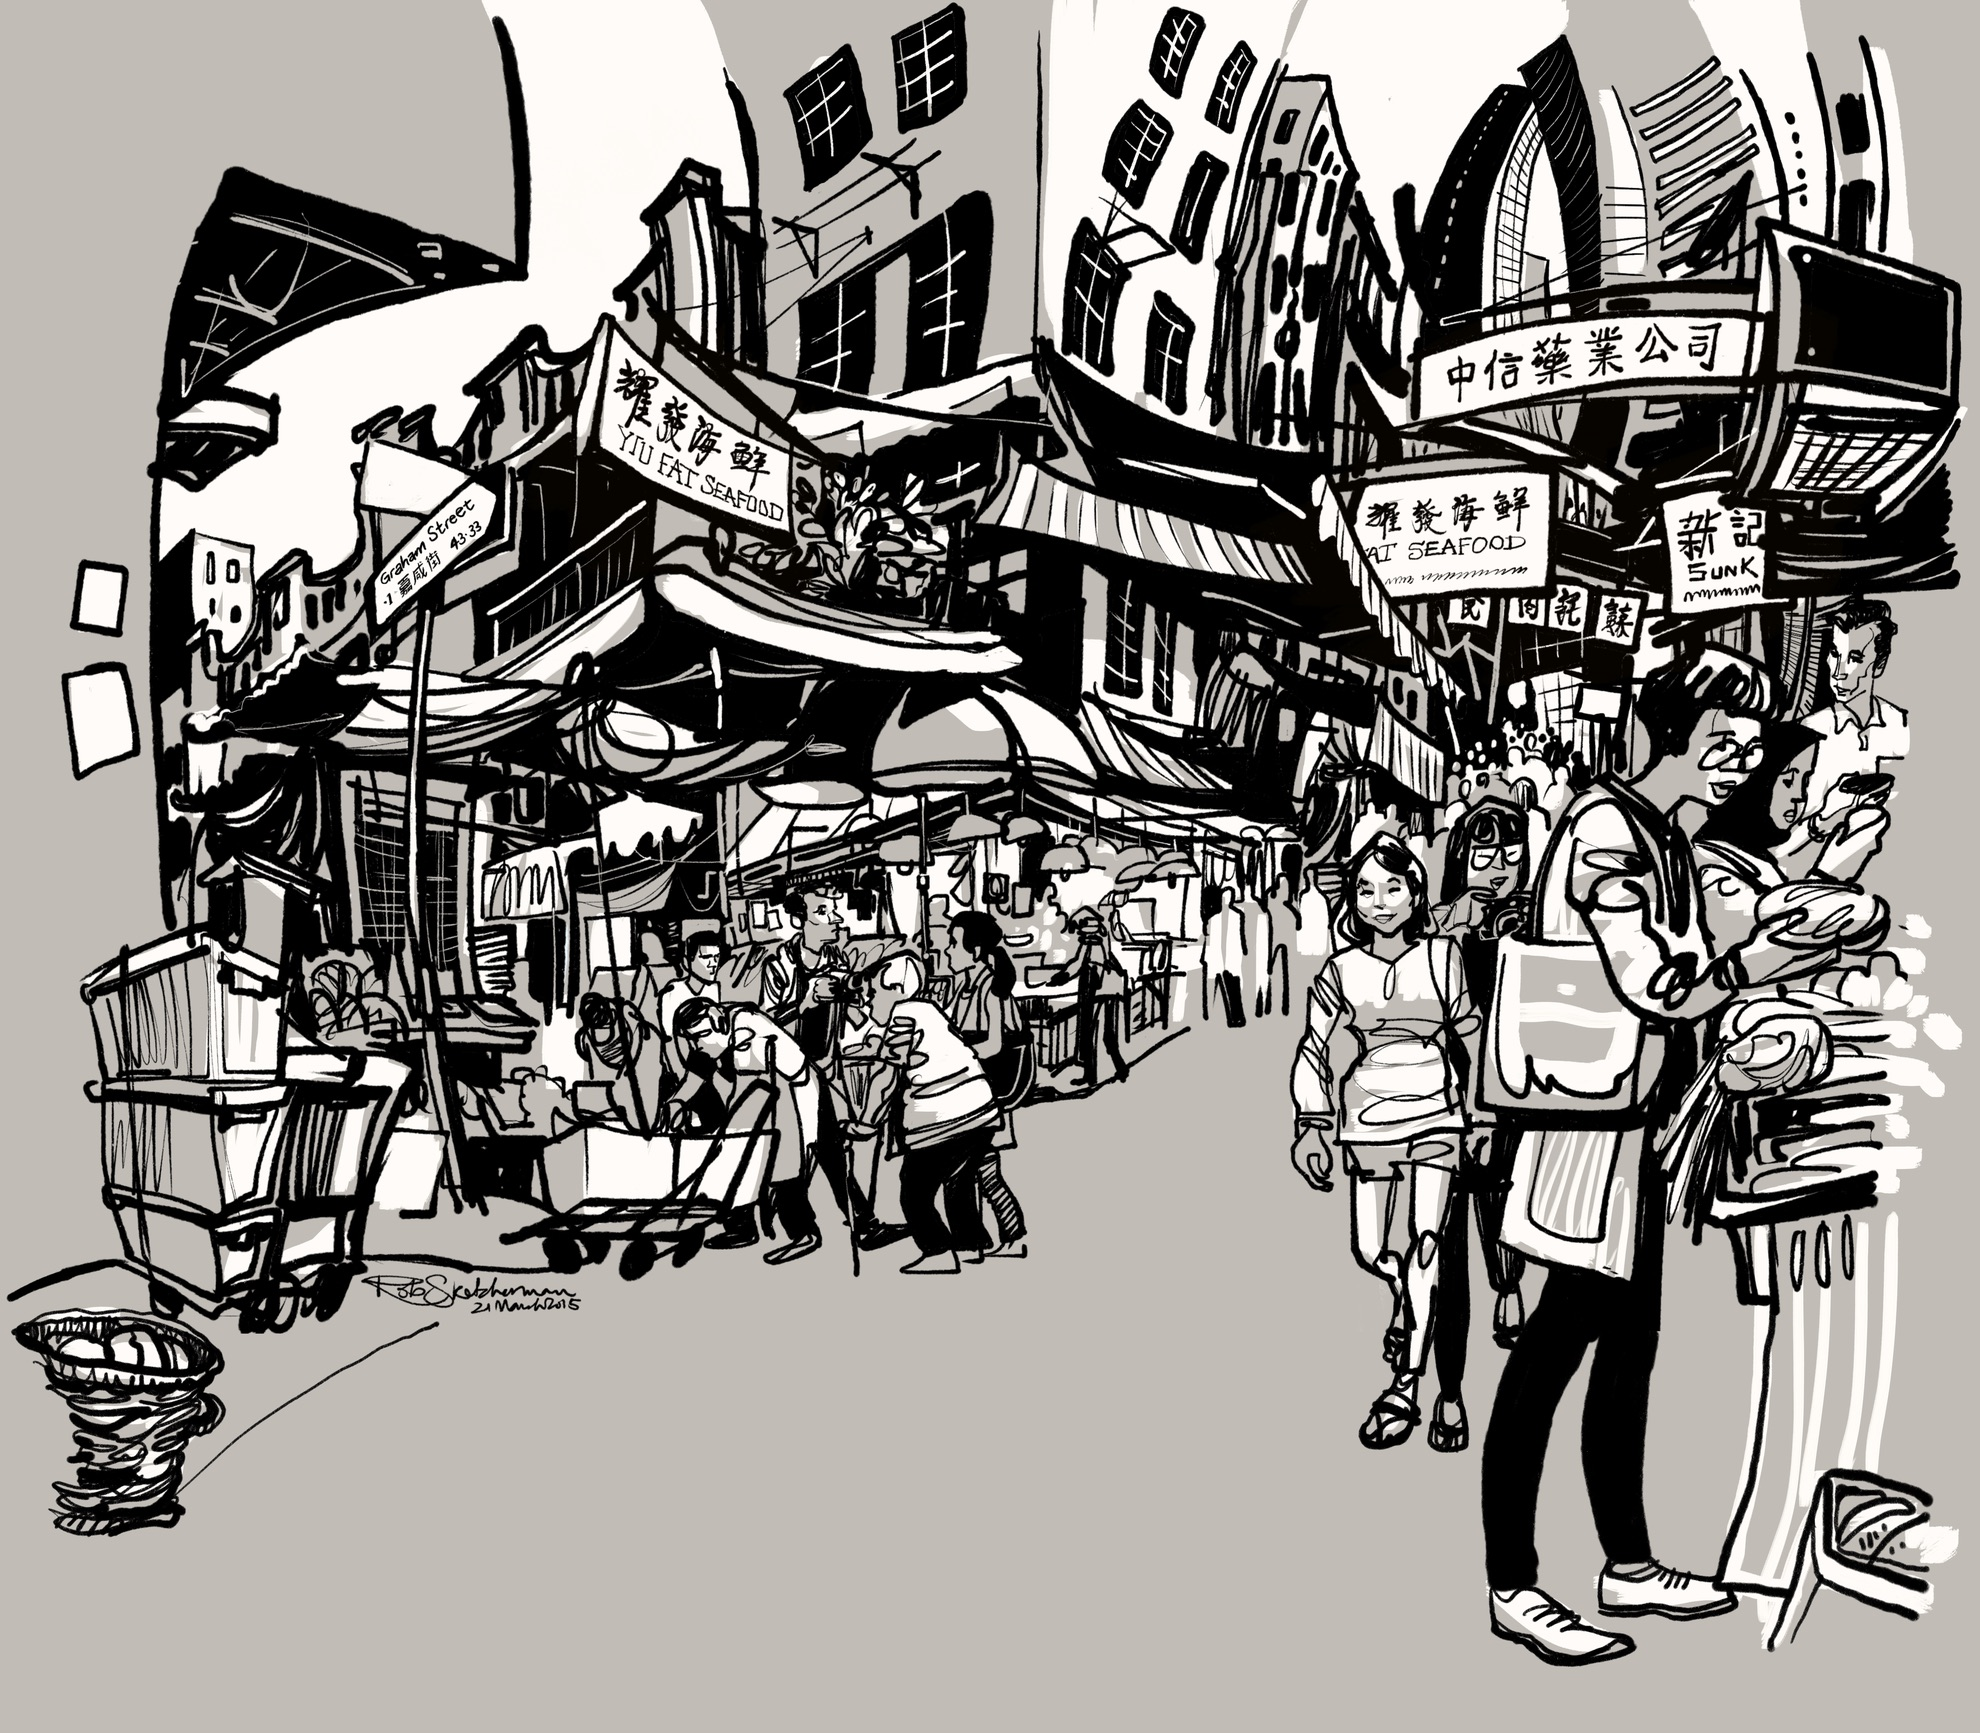 Central, Hong Kong is one of Rob's favorite spots in the city. This is a scene from the Gage Street market.